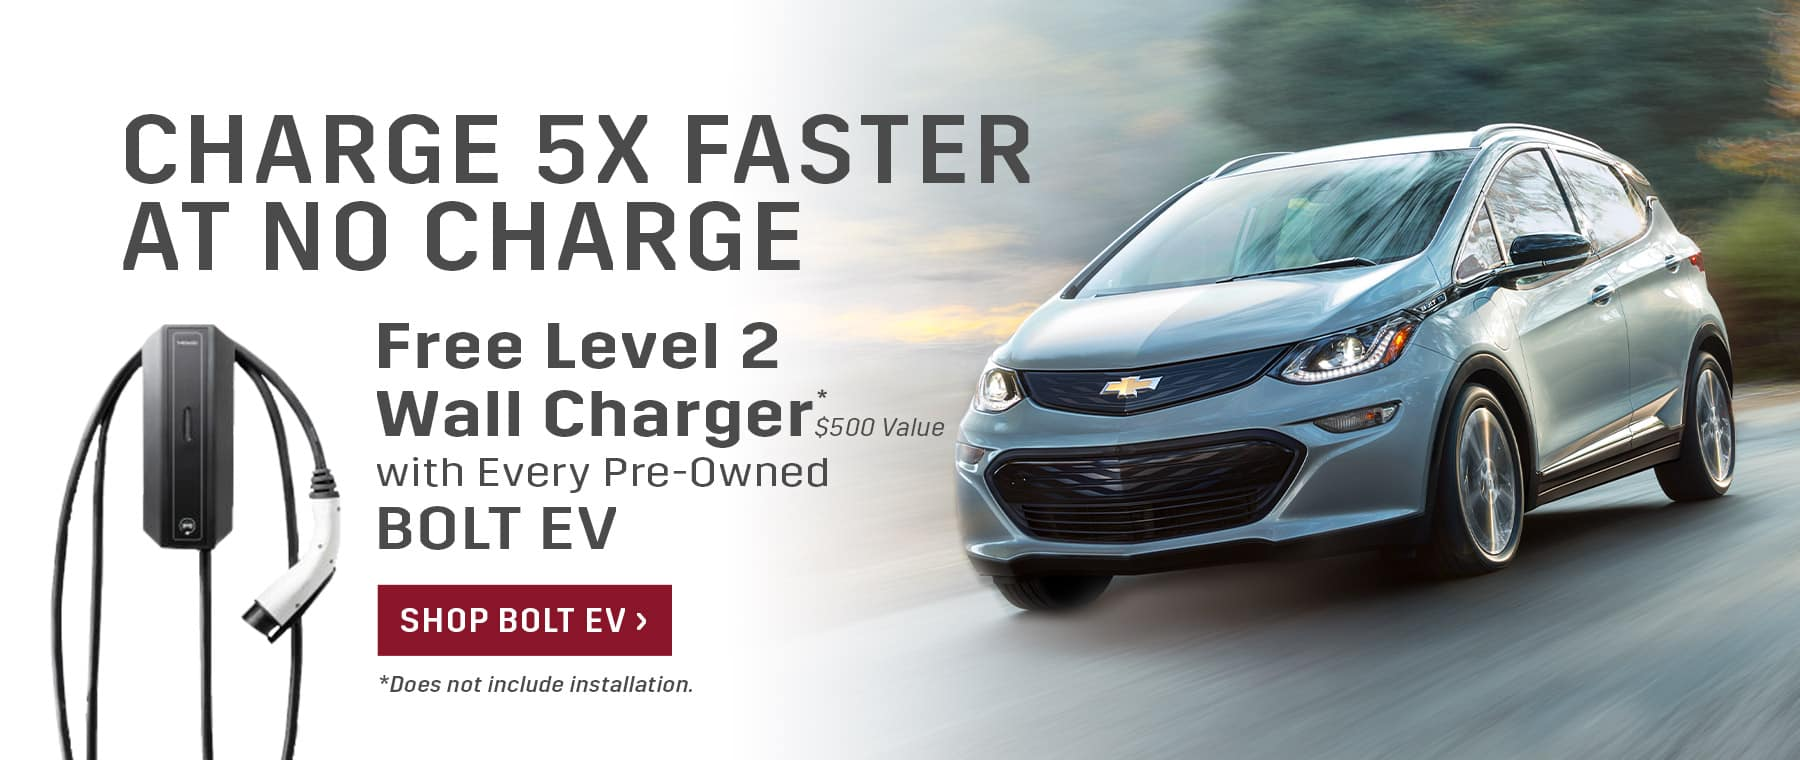 Free Level 2 Wall Charger with Every Pre-Owned Bolt EV